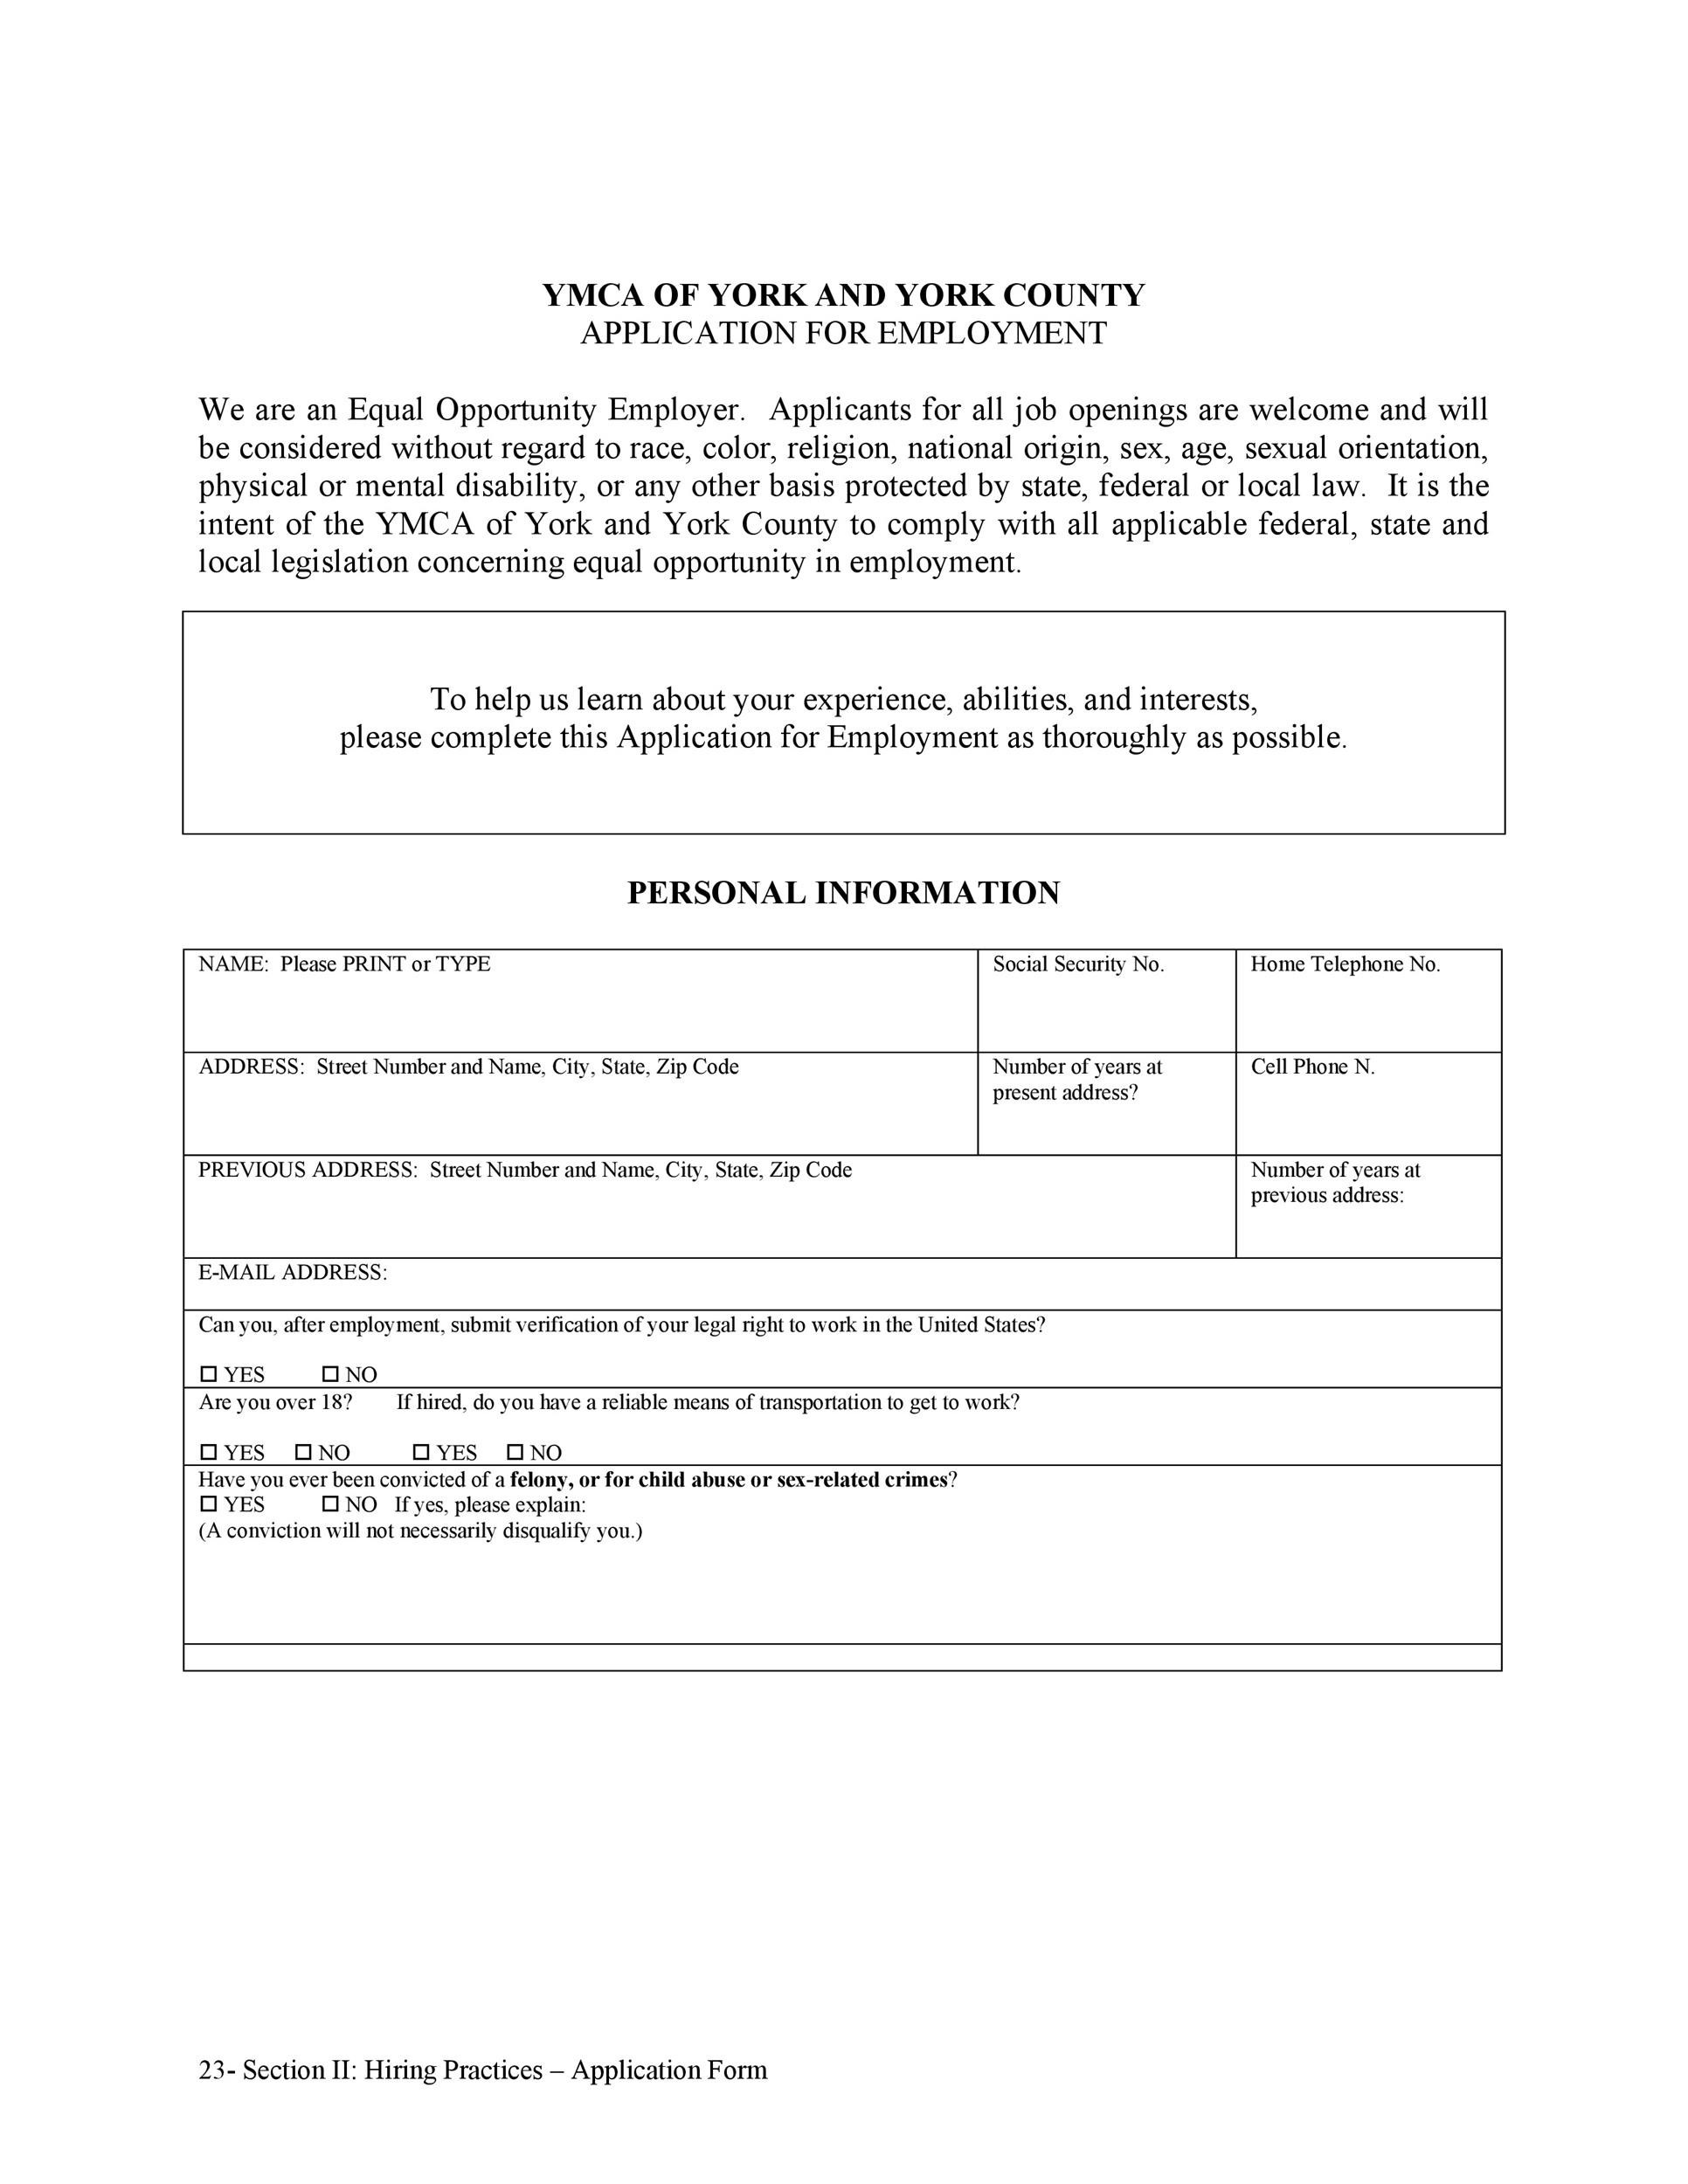 Free employment application template 30